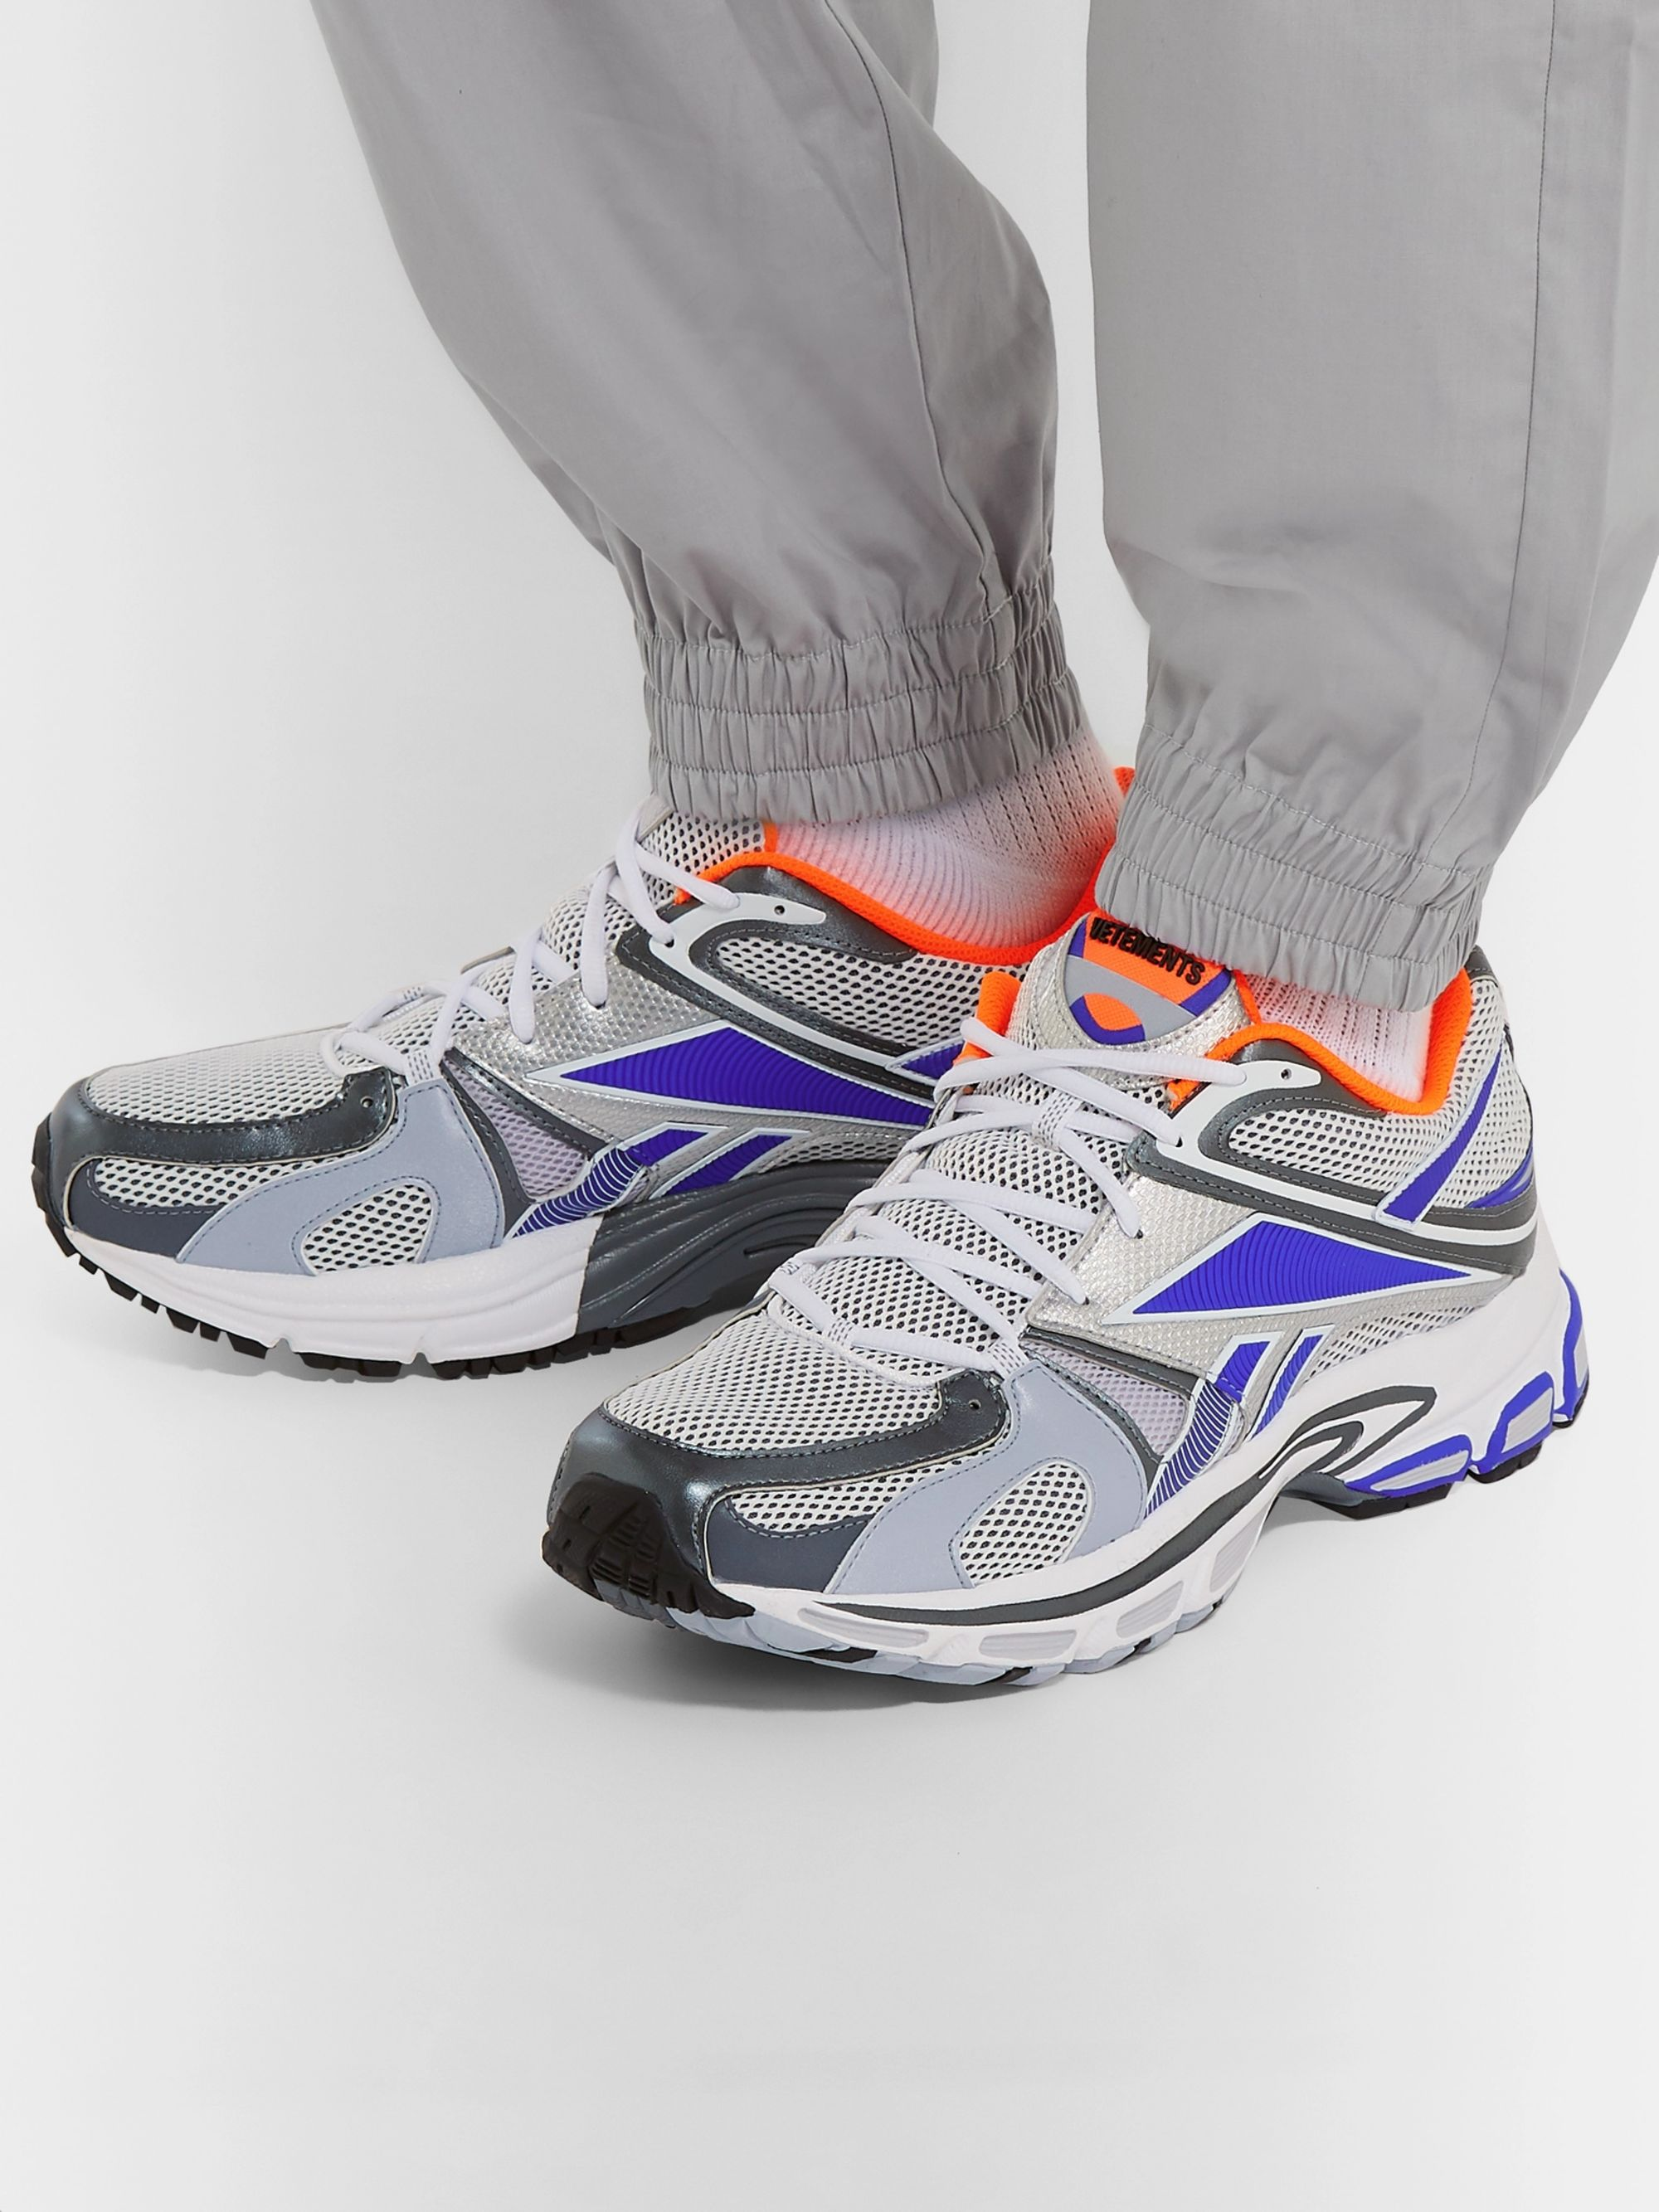 Vetements + Reebok Runner 200 Rubber-Trimmed Mesh Sneakers